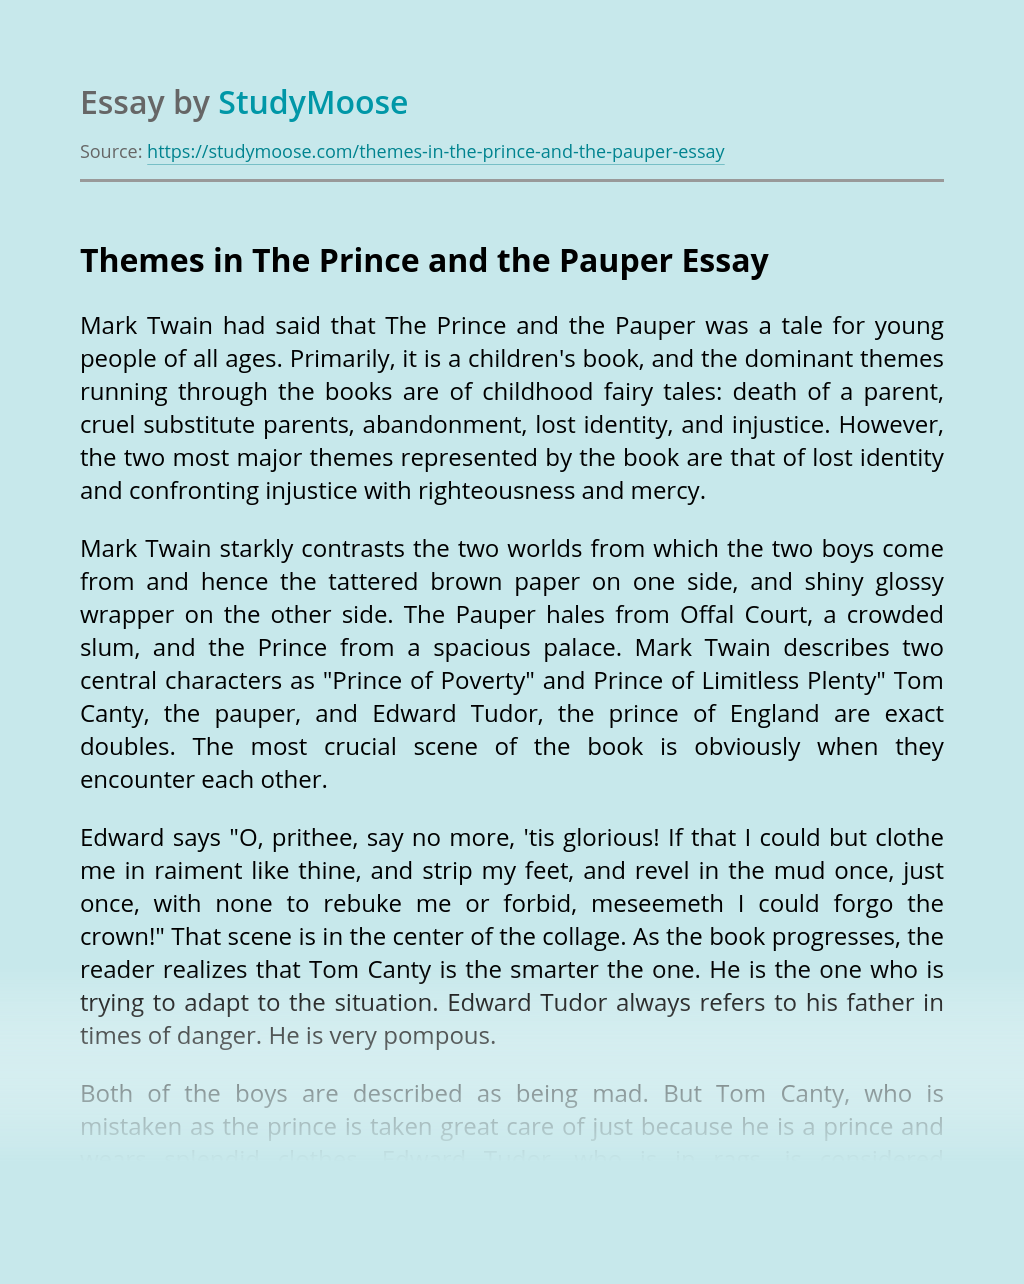 Themes in The Prince and the Pauper